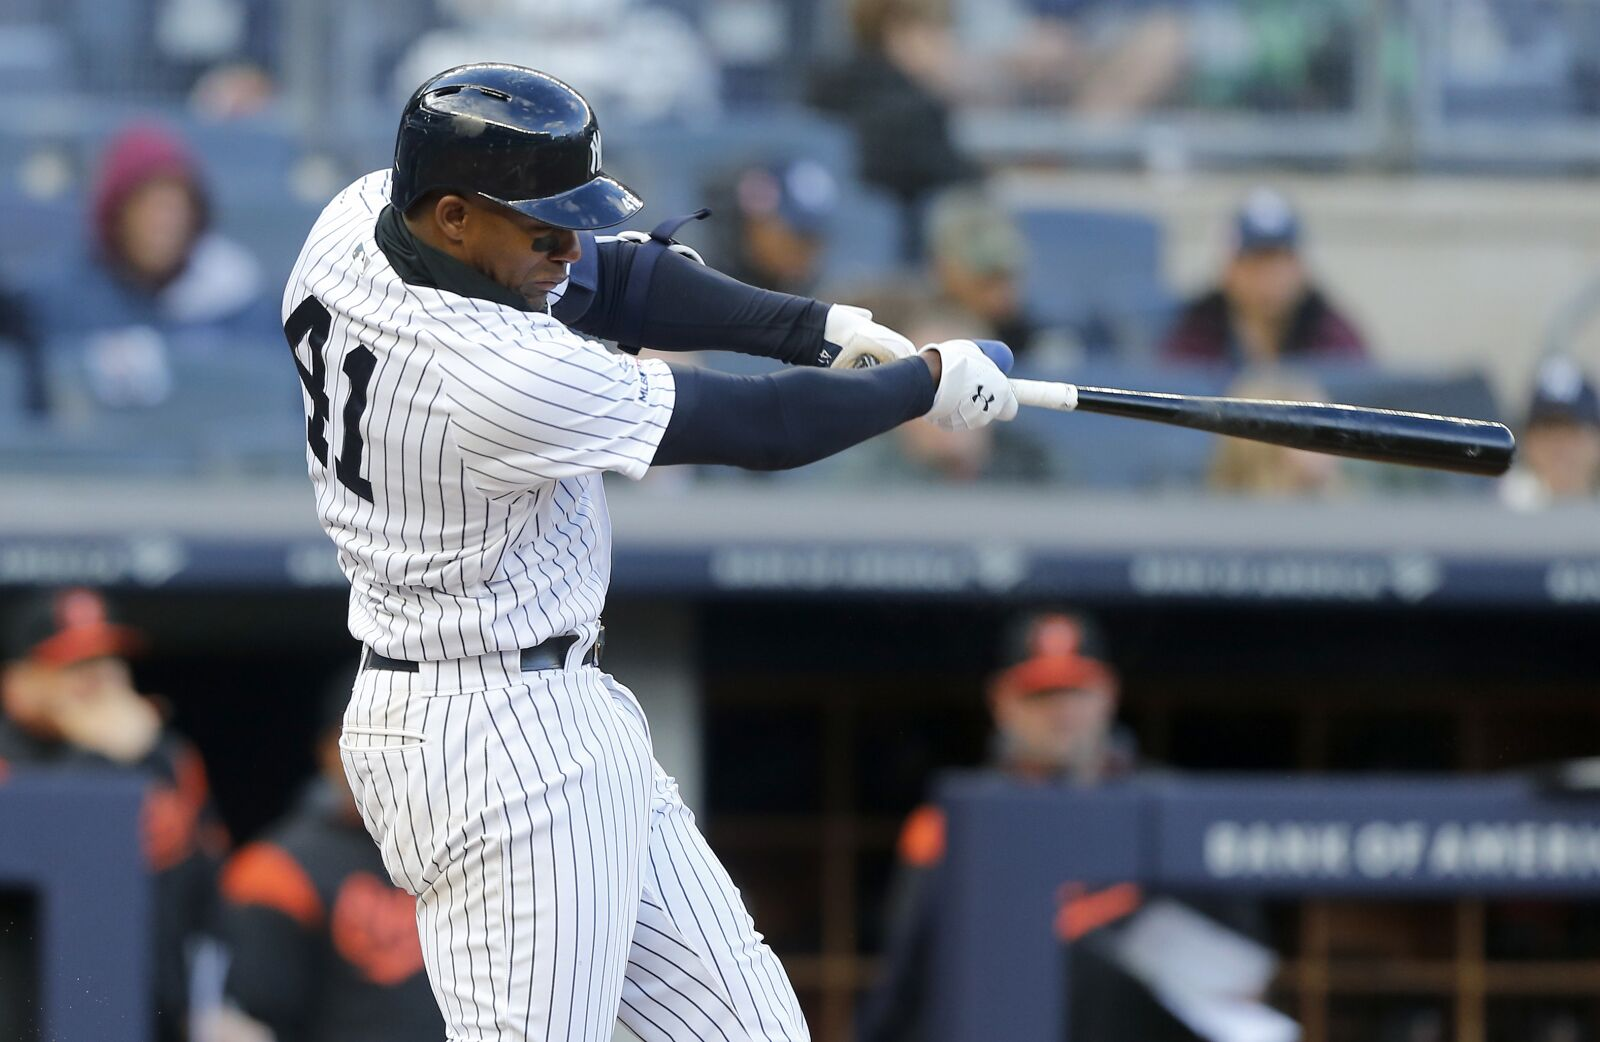 d7e49269781 Yankees may be ready to change Miguel Andujar s career path